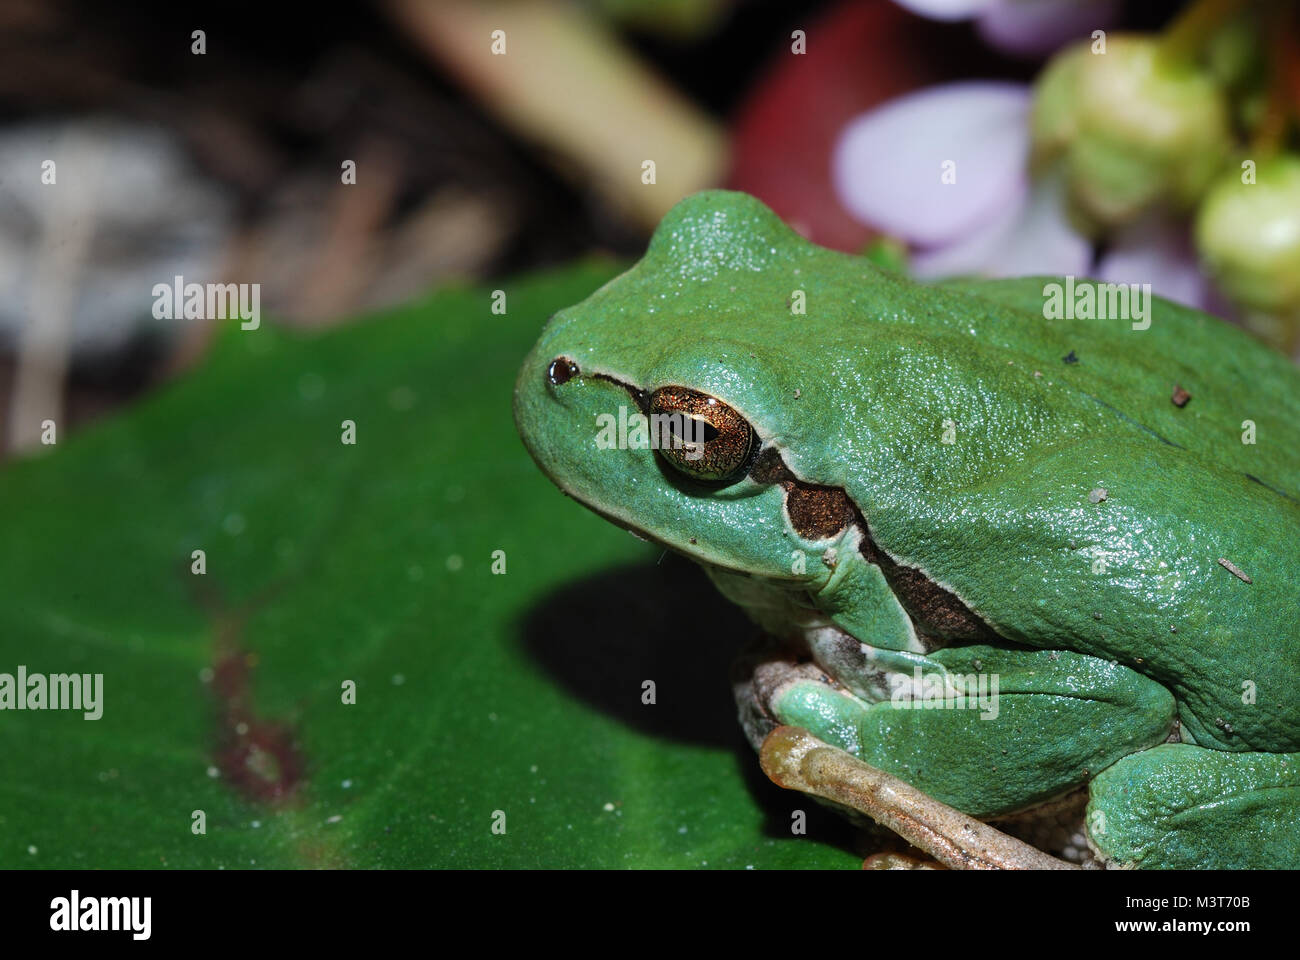 close-up of a green tree frog close - Stock Image